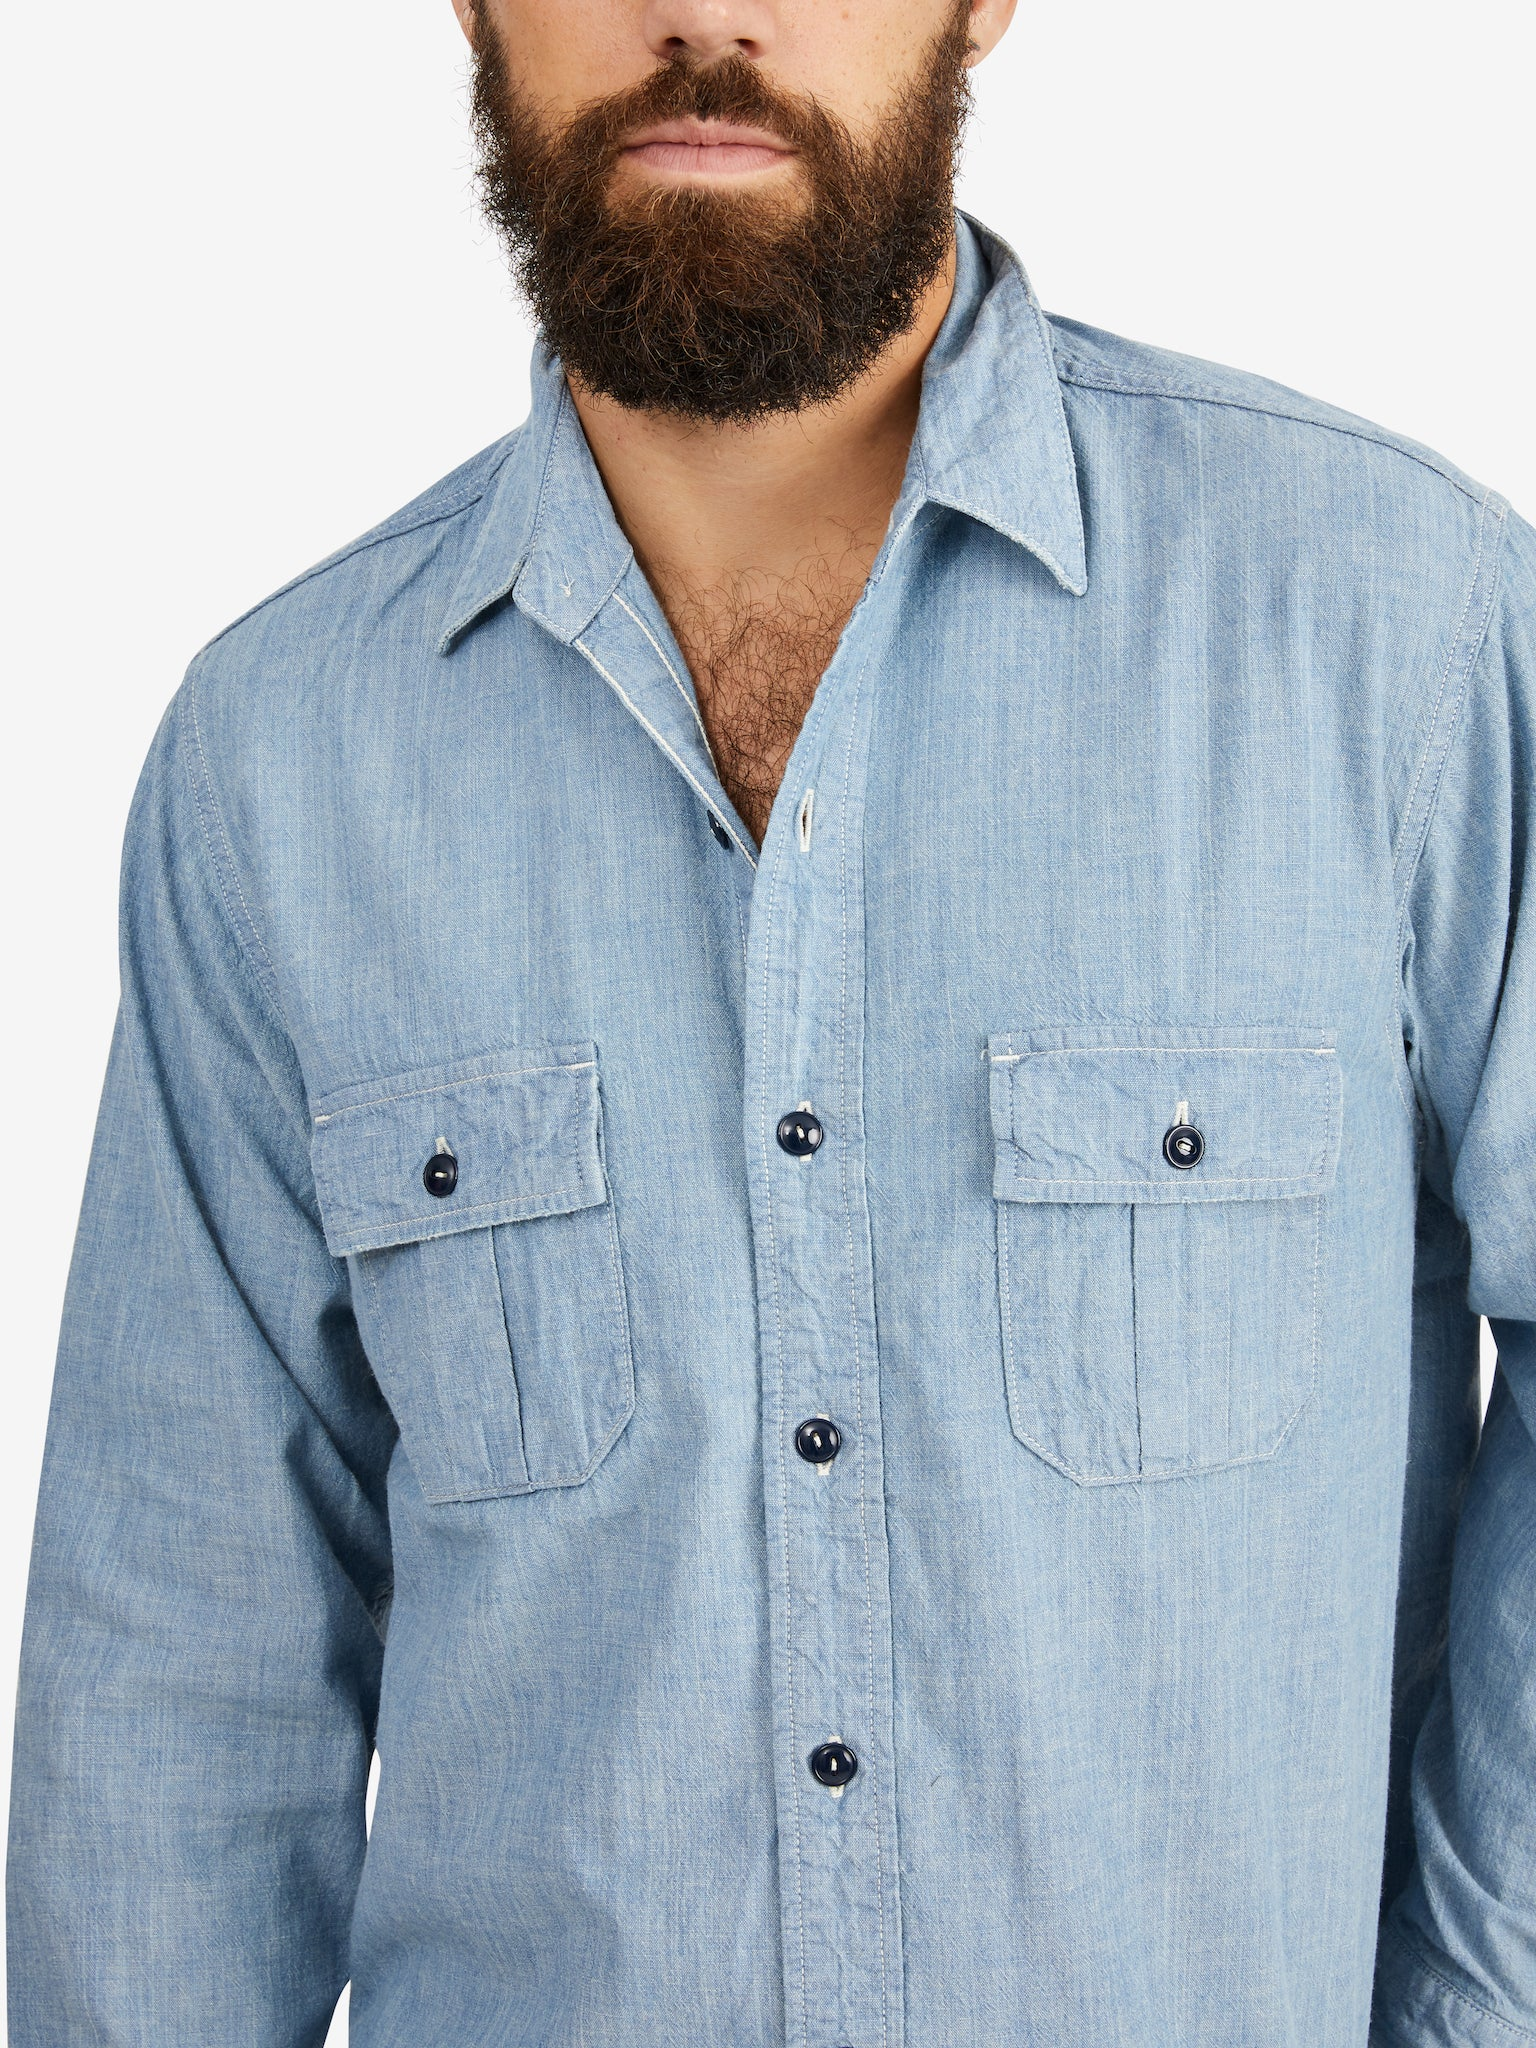 Chimala Slub Yarn Chambray Work Shirt